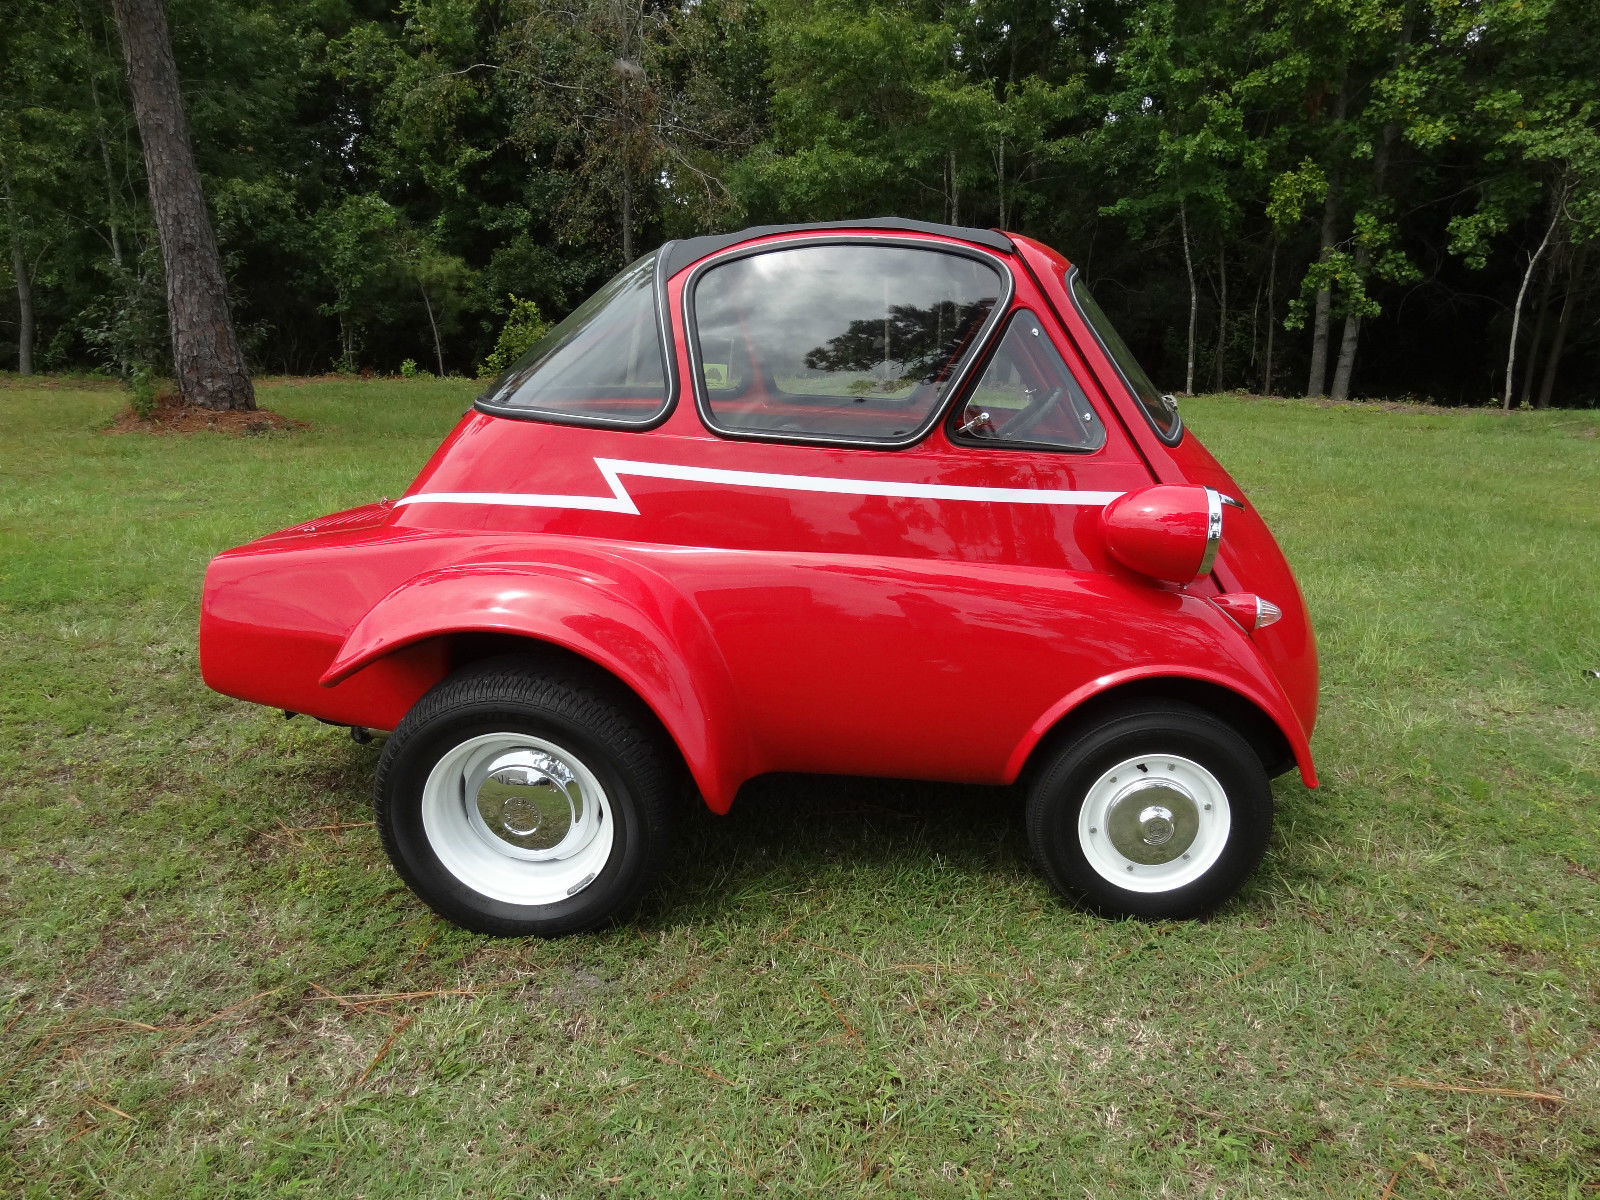 The Isetta was originally designed and built by Italian refrigerator  manufacturer Iso and produced by various manufacturing entities from 1953  through 1962.